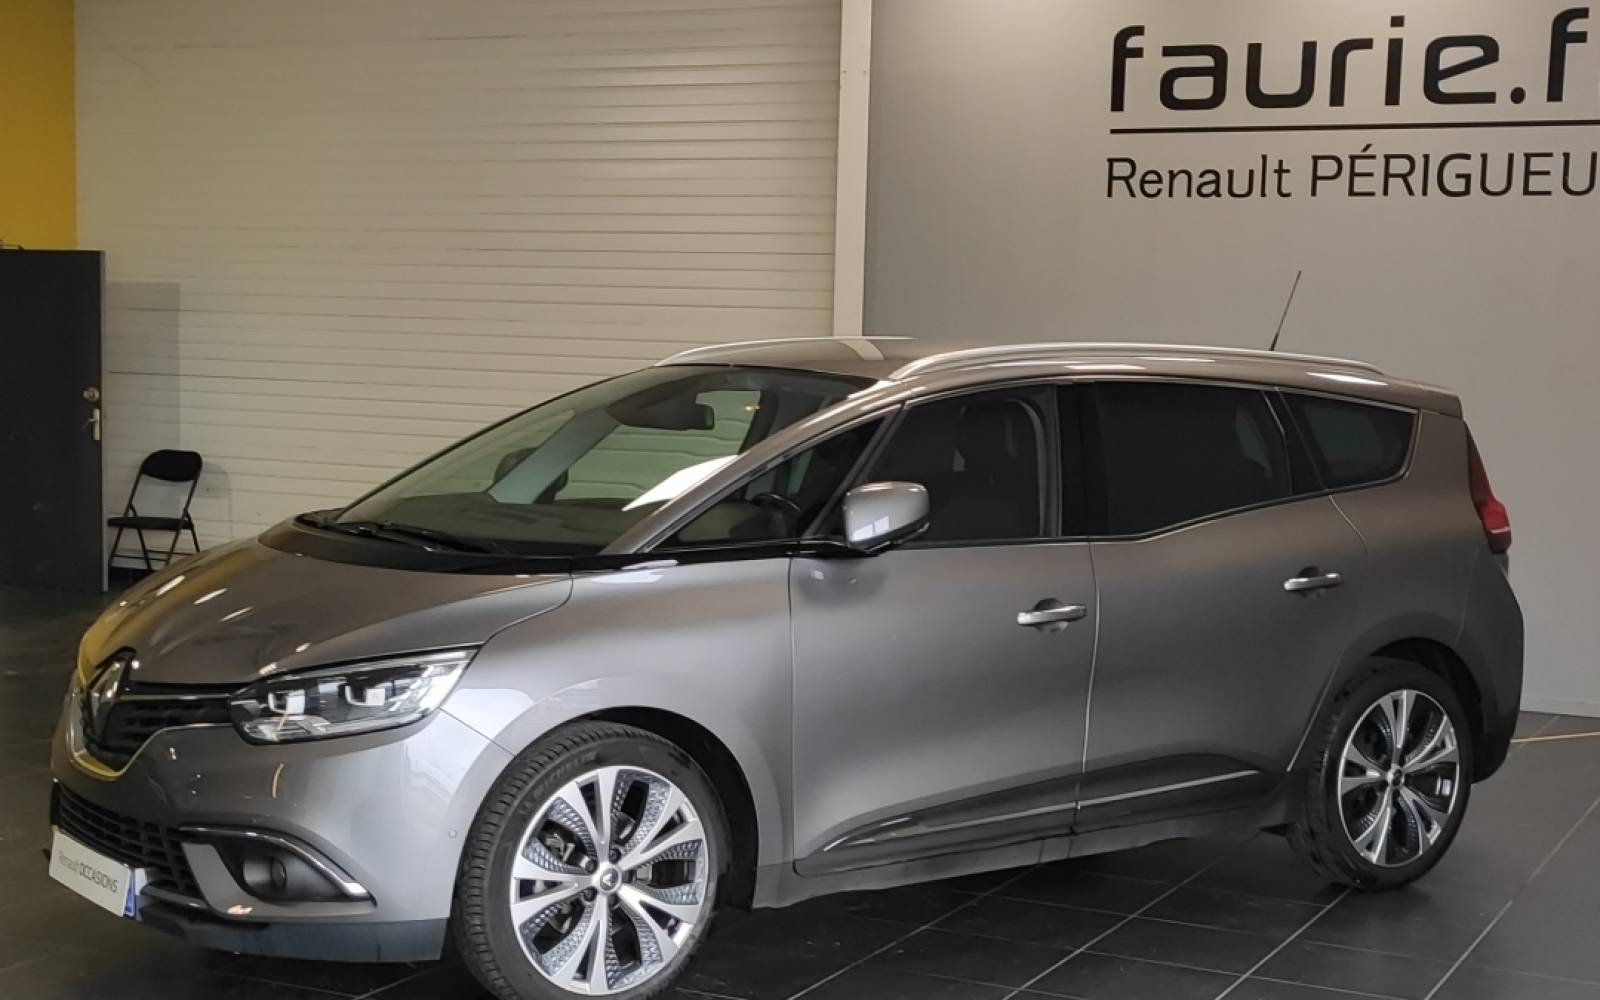 RENAULT Grand Scénic TCe 160 Energy EDC - véhicule d'occasion - Site Internet Faurie - Sarda - 24750 - Trelissac - 1